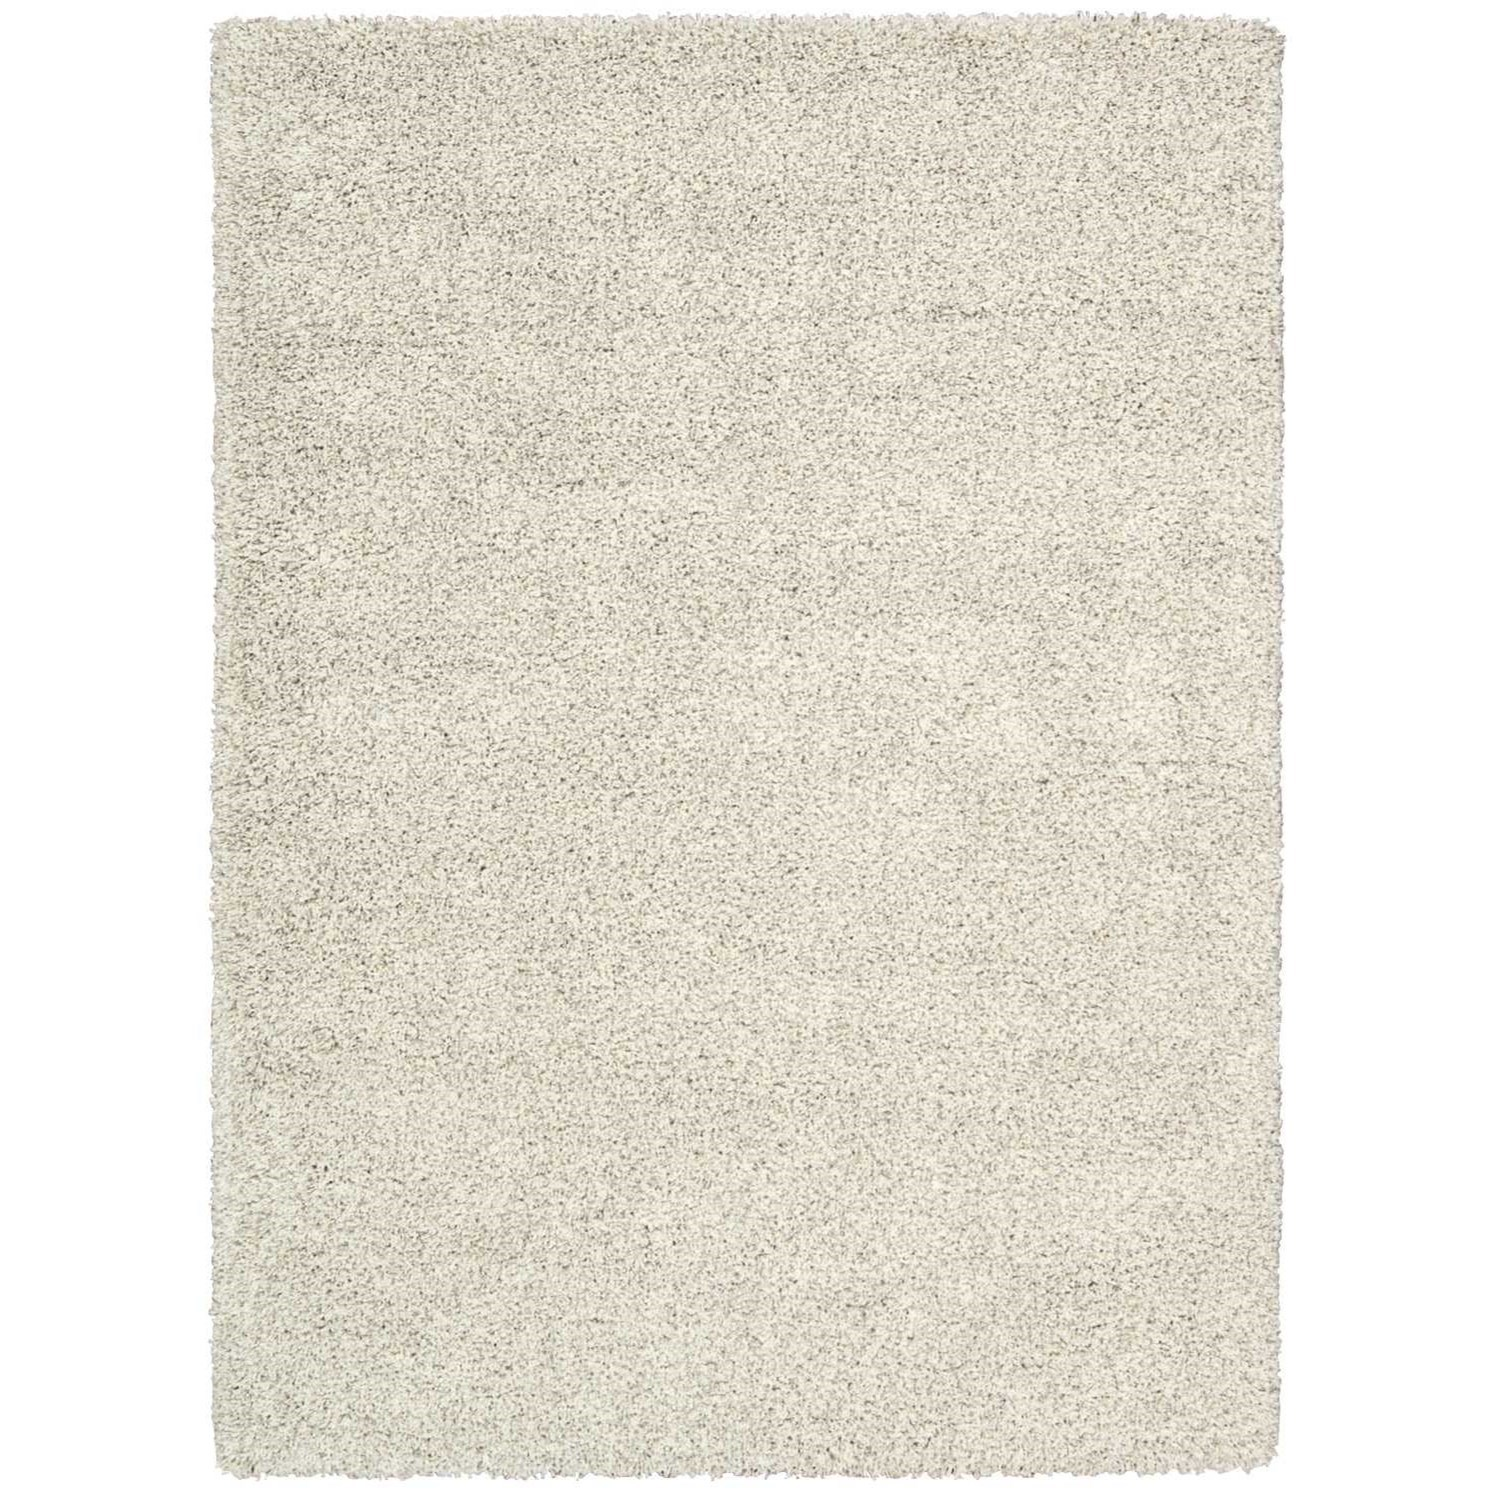 Amore Amore AMOR1 White 8'x11'   Rug by Nourison at Home Collections Furniture